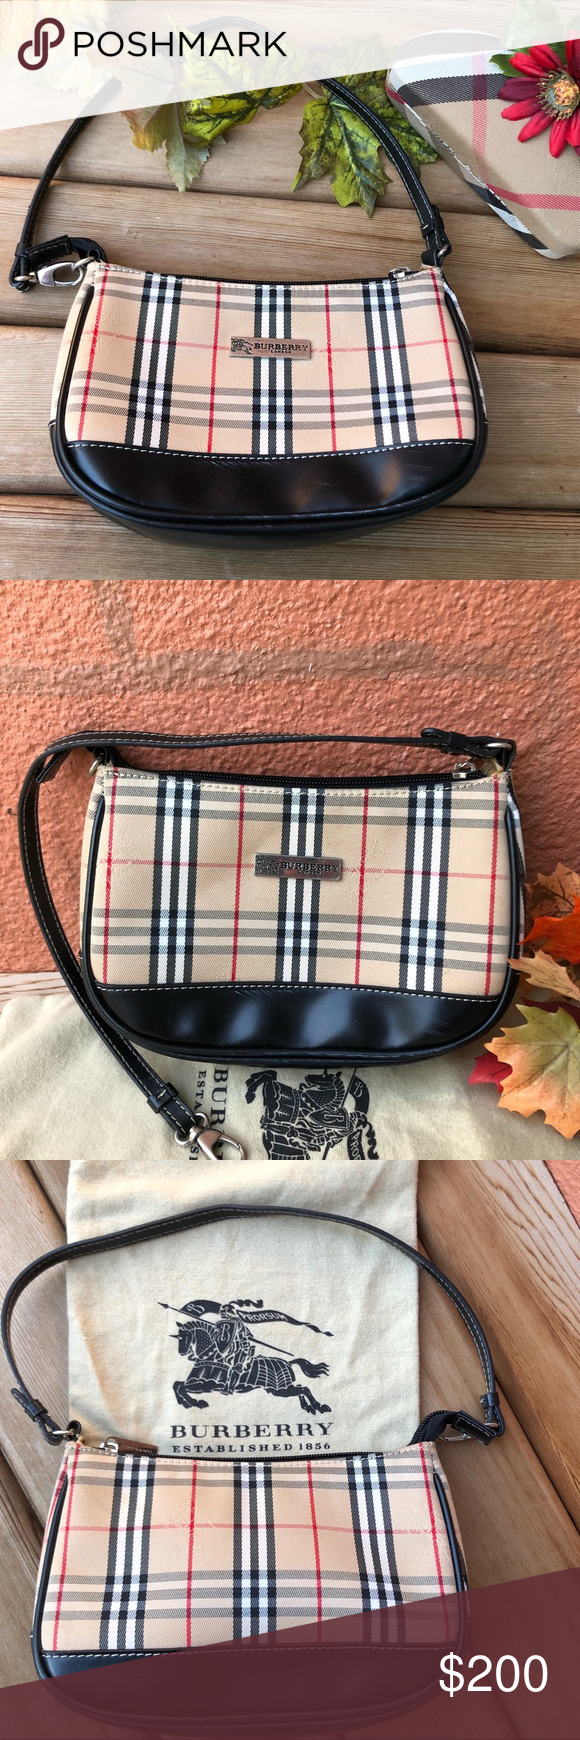 53c7143e26ff Burberry Small Purse Clutch Wristlet - ECU Adorable and identifiable  accessory for the Fashionista Small Burberry Blue Label Purse Worn as clutch